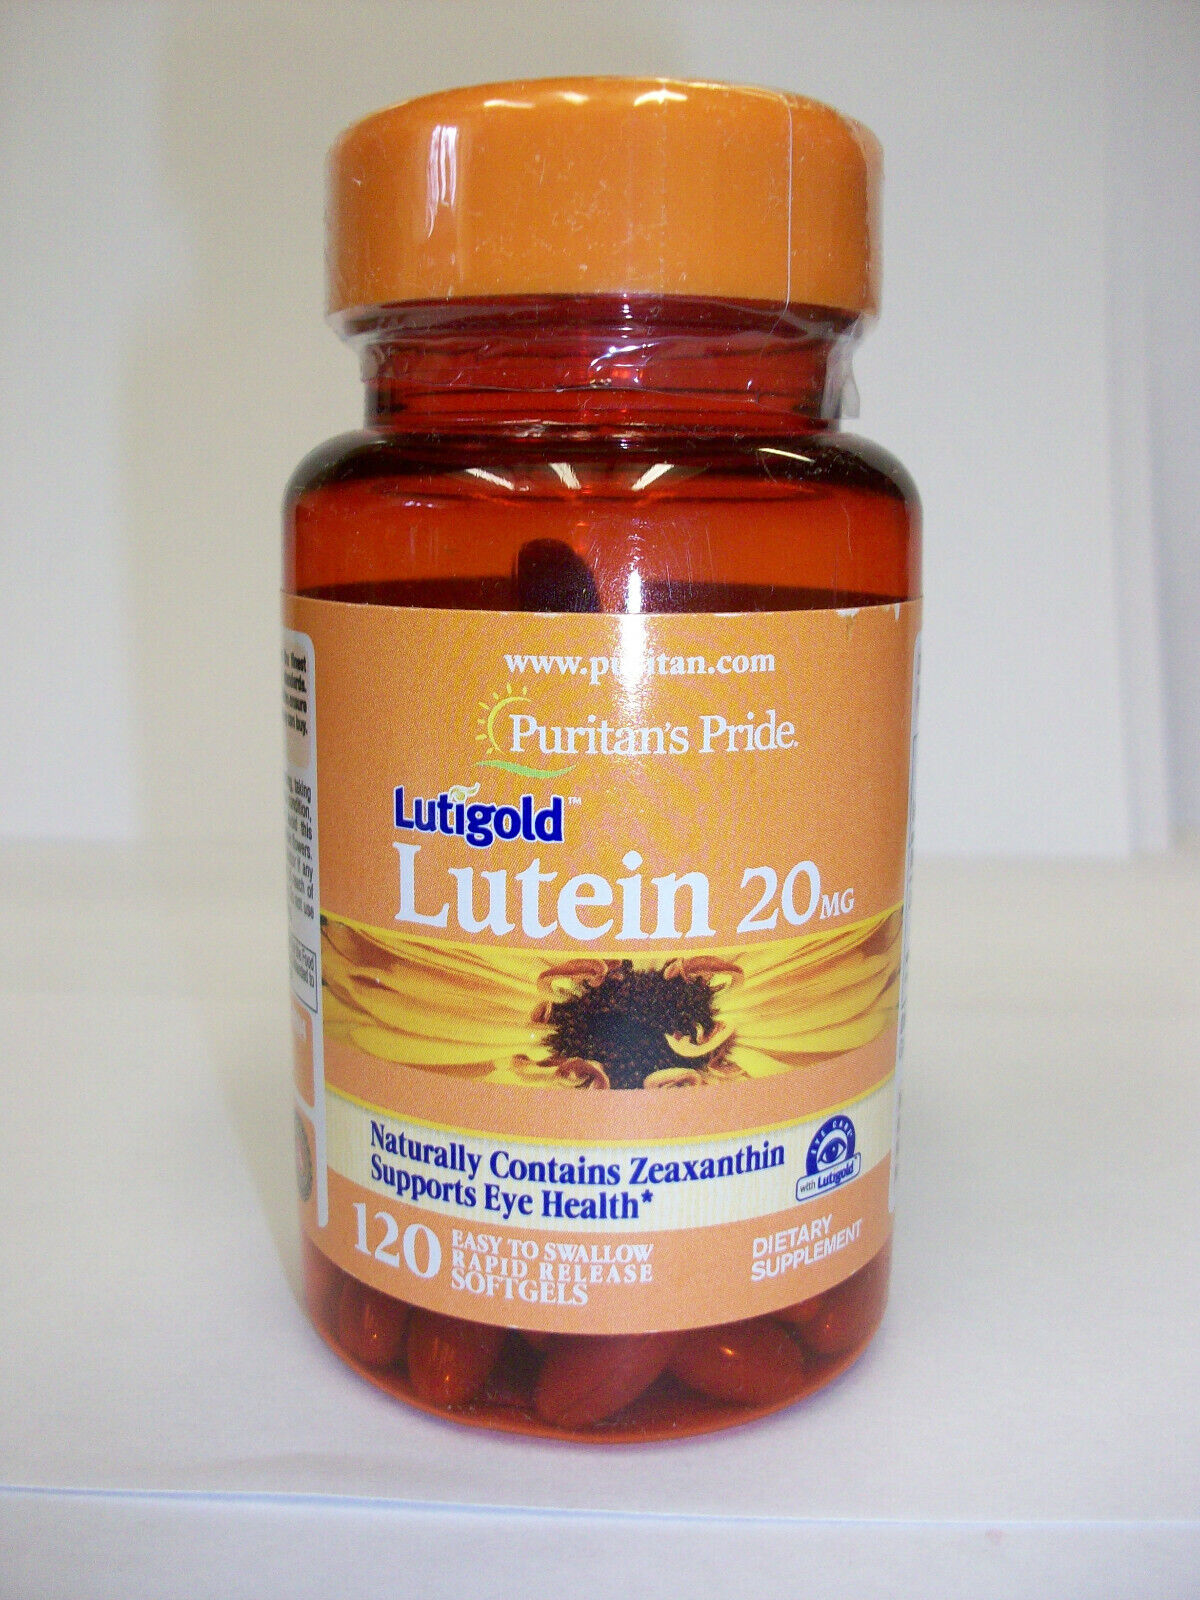 Puritan's Pride 20mg Lutein with Zeaxanthin - 120 Softgels